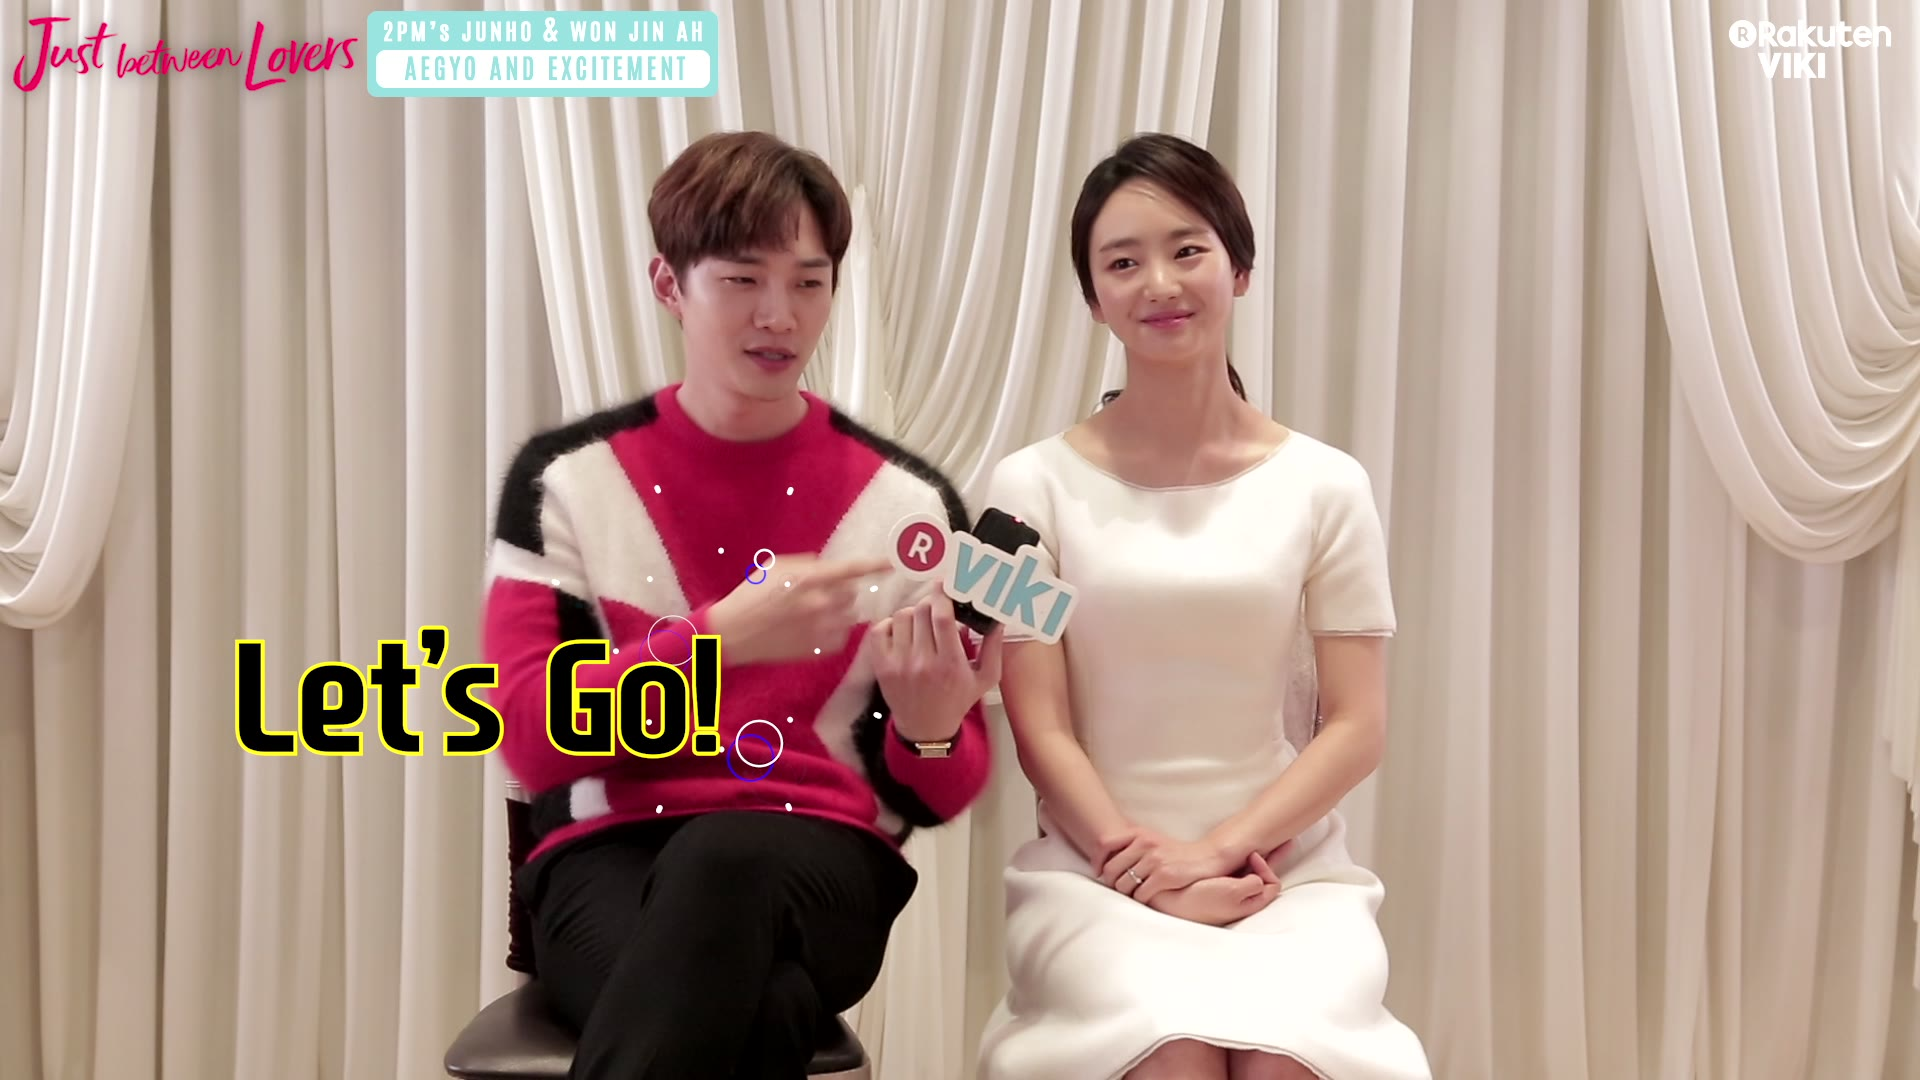 Junho and Won Jin Ah's Aegyo: Just Between Lovers